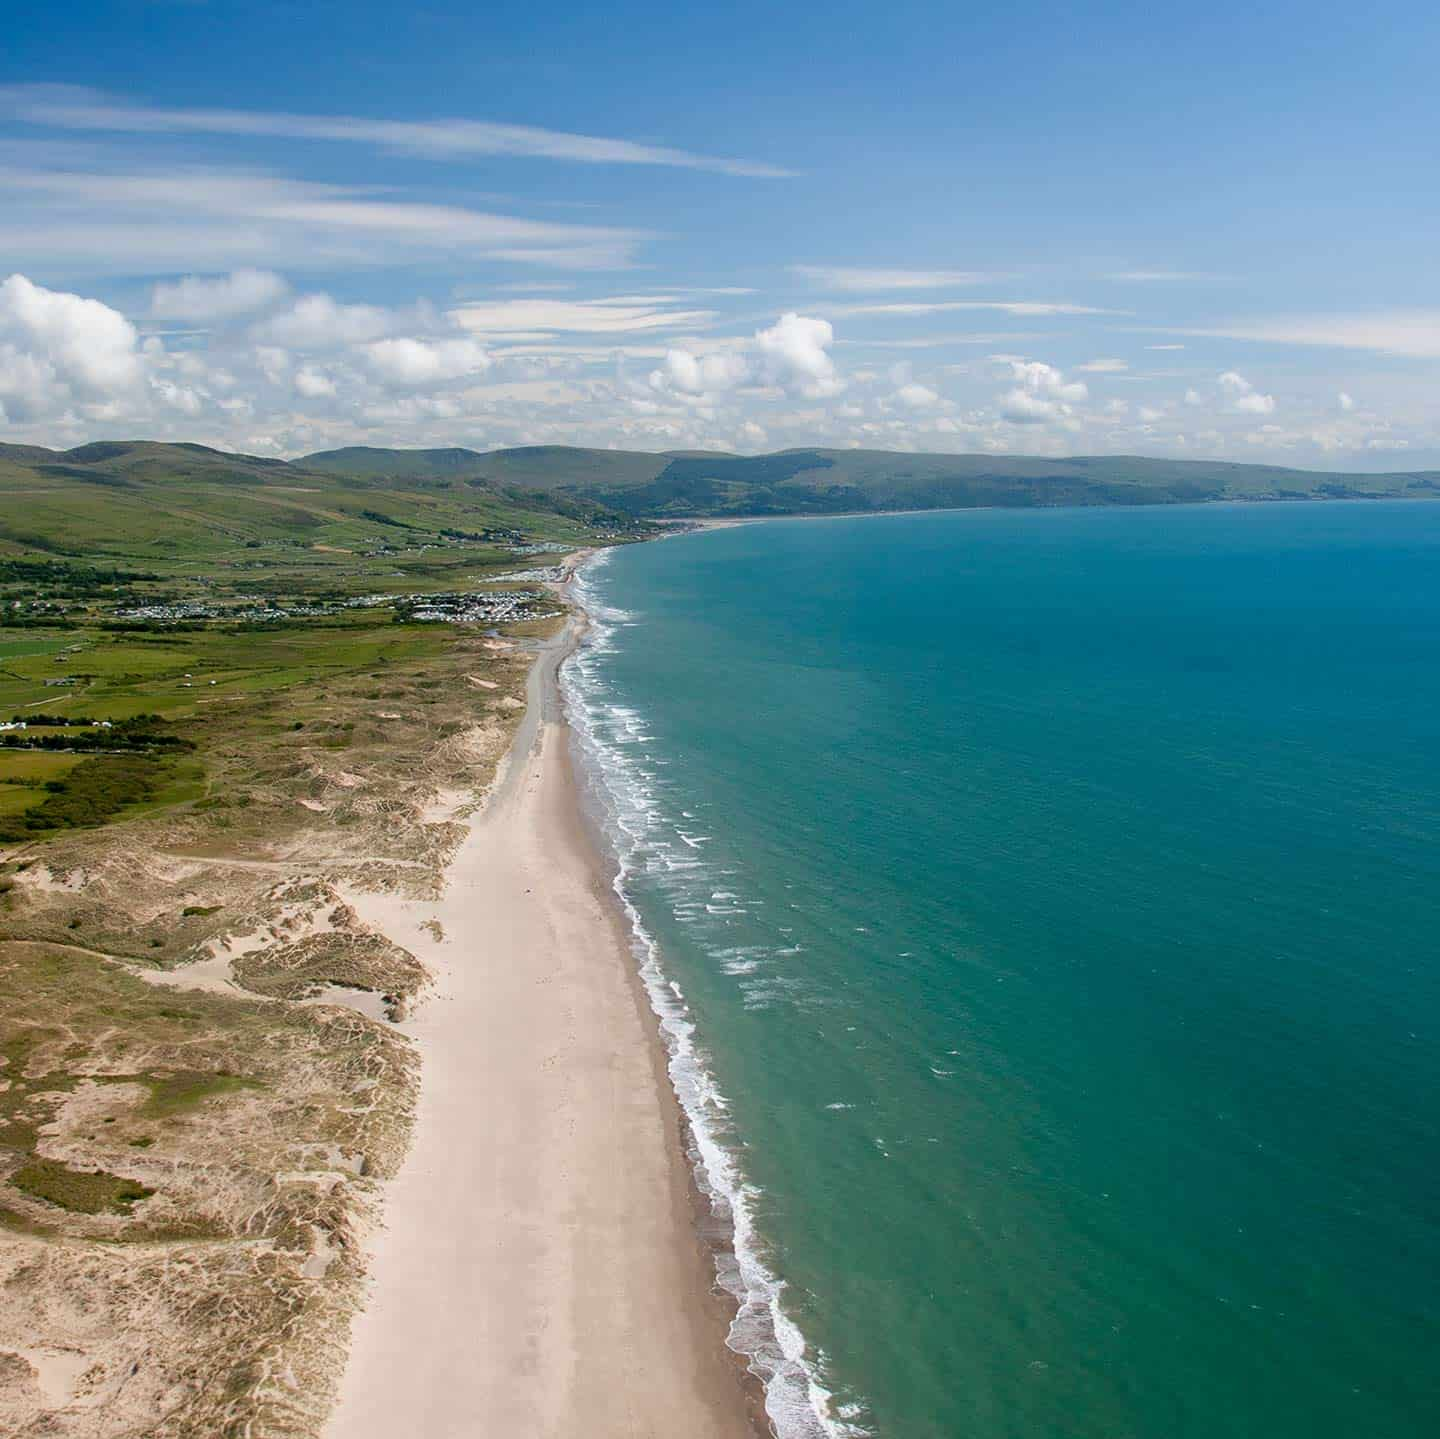 Image of beaches to the north of Barmouth, Wales